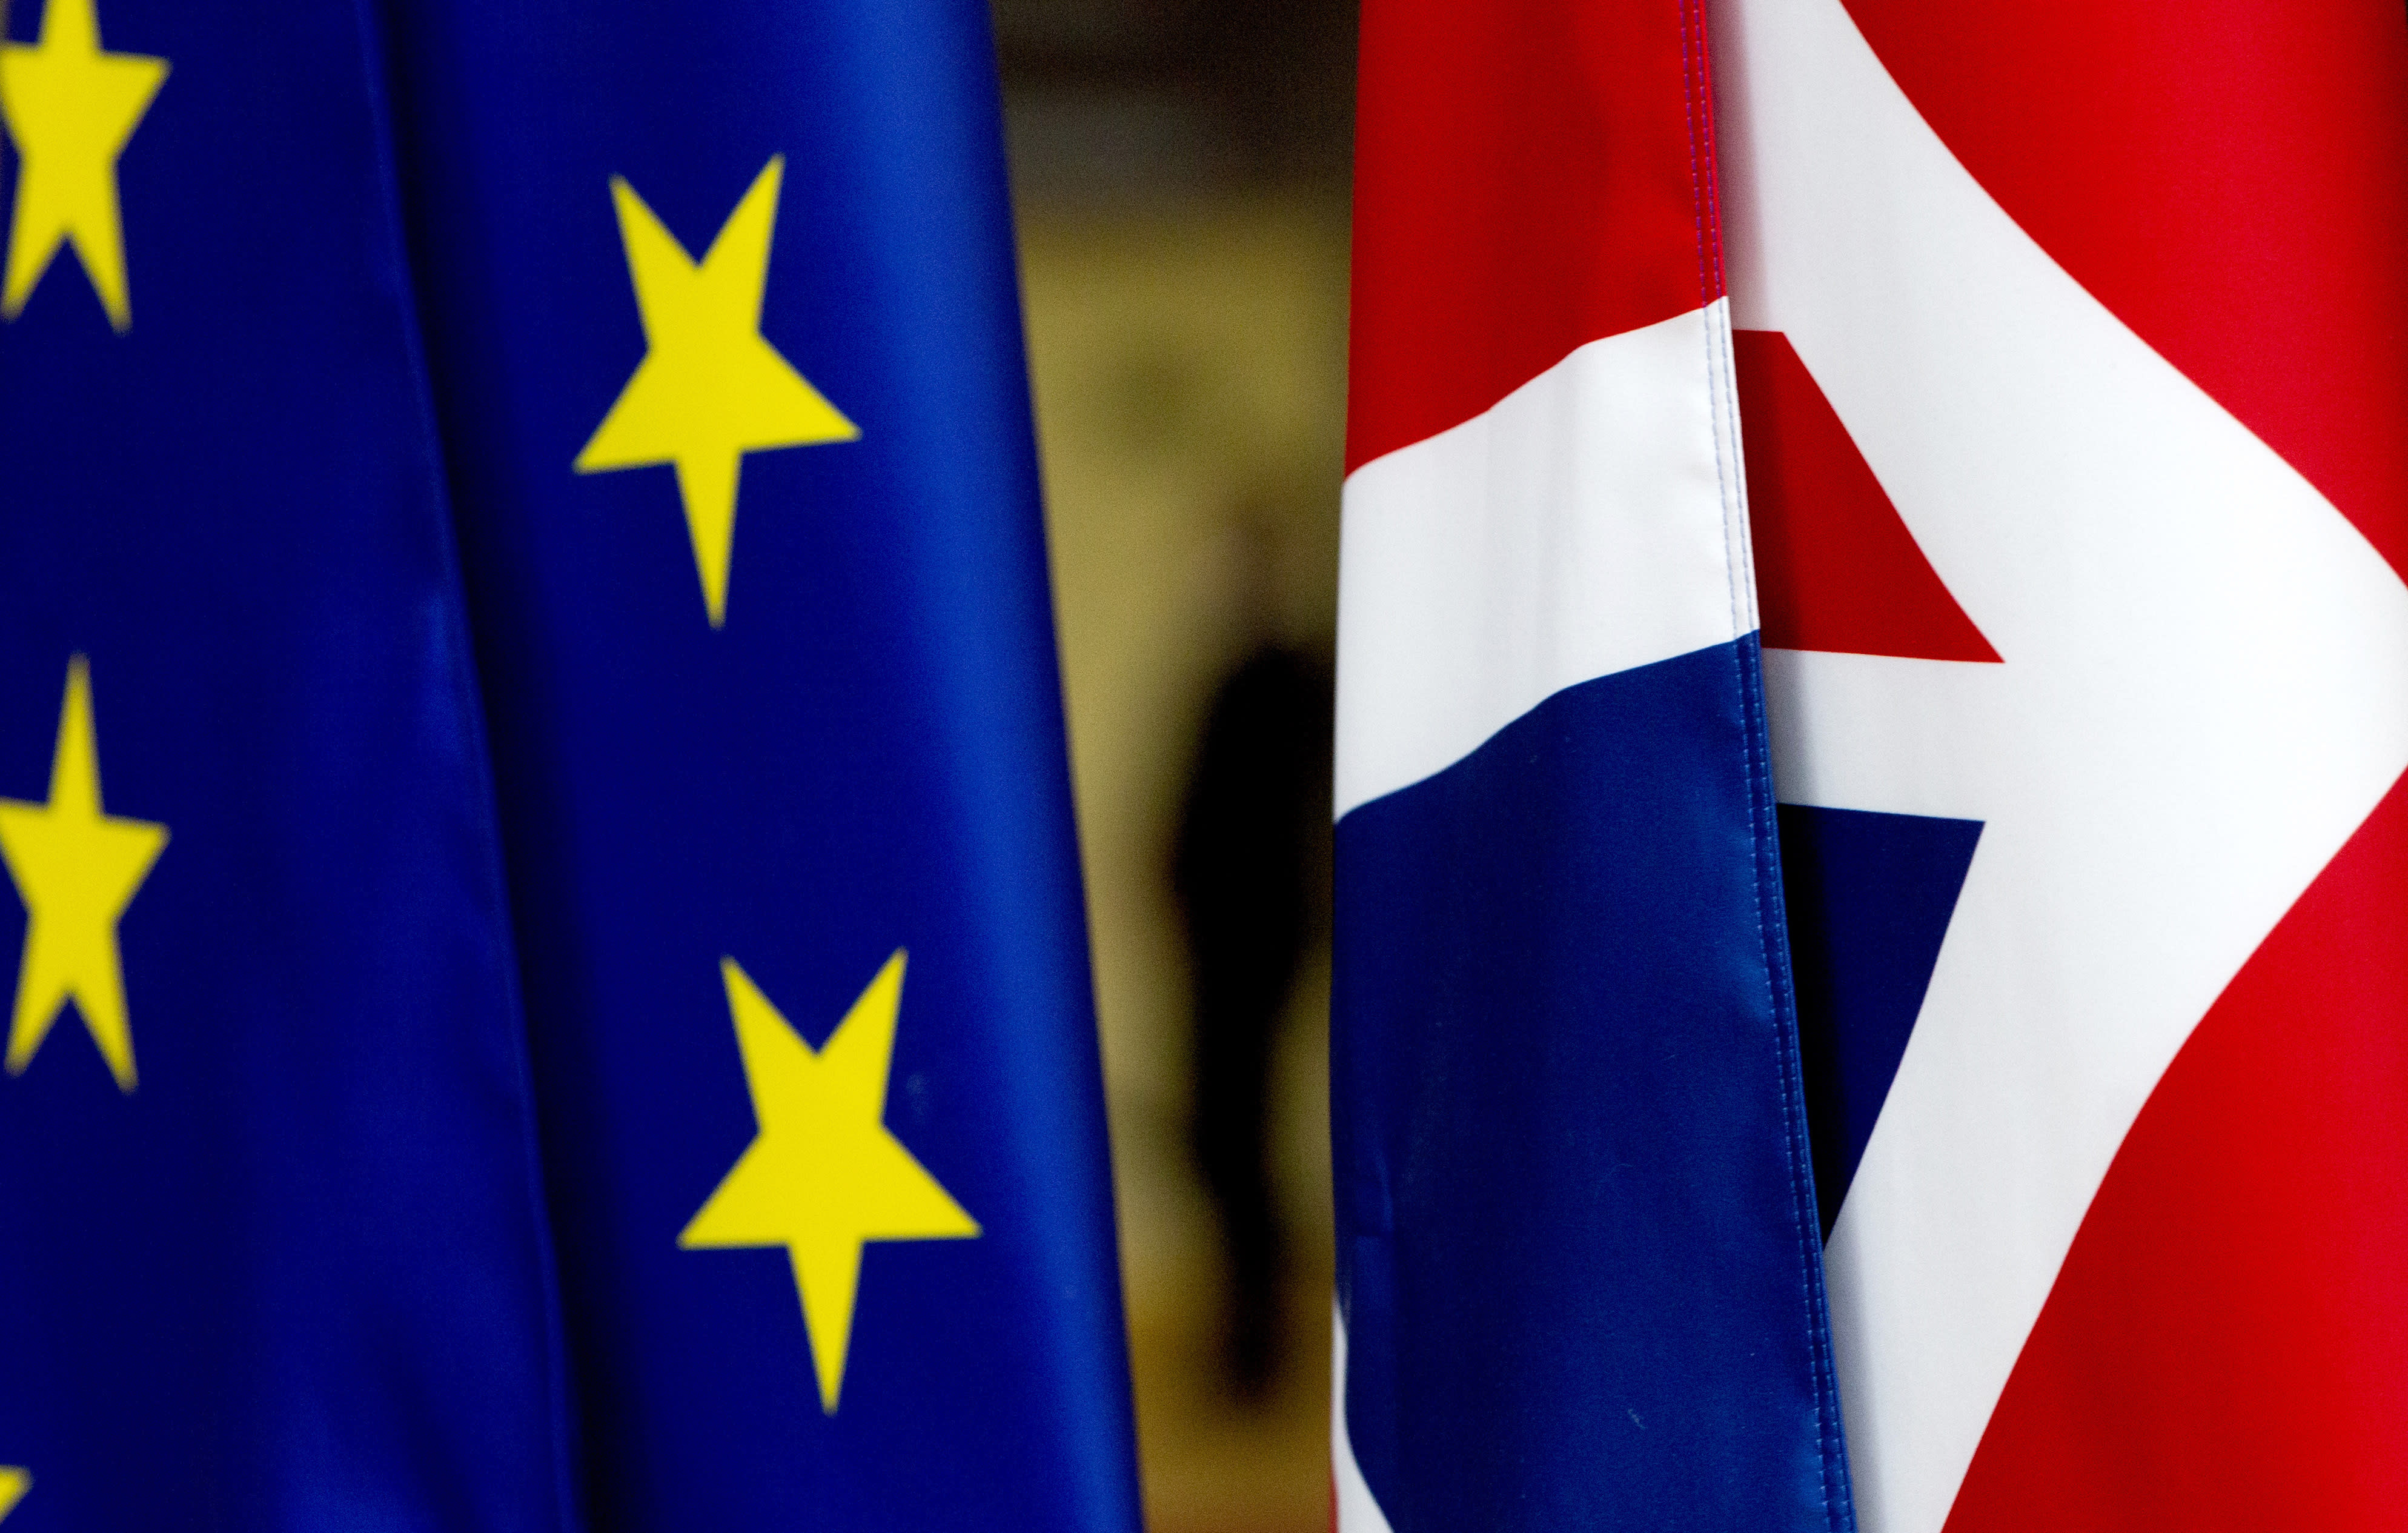 F|ILE - In this file photo dated Tuesday, Jan. 28, 2020, the British Union flag, right, and the EU flag, seen inside the atrium at the Europa building in Brussels. The number of Britons moving to live in European Union countries has soared since the Brexit vote in 2016, a U.K.-German study has revealed Tuesday Aug. 4, 2020.(AP Photo/Virginia Mayo, FILE)